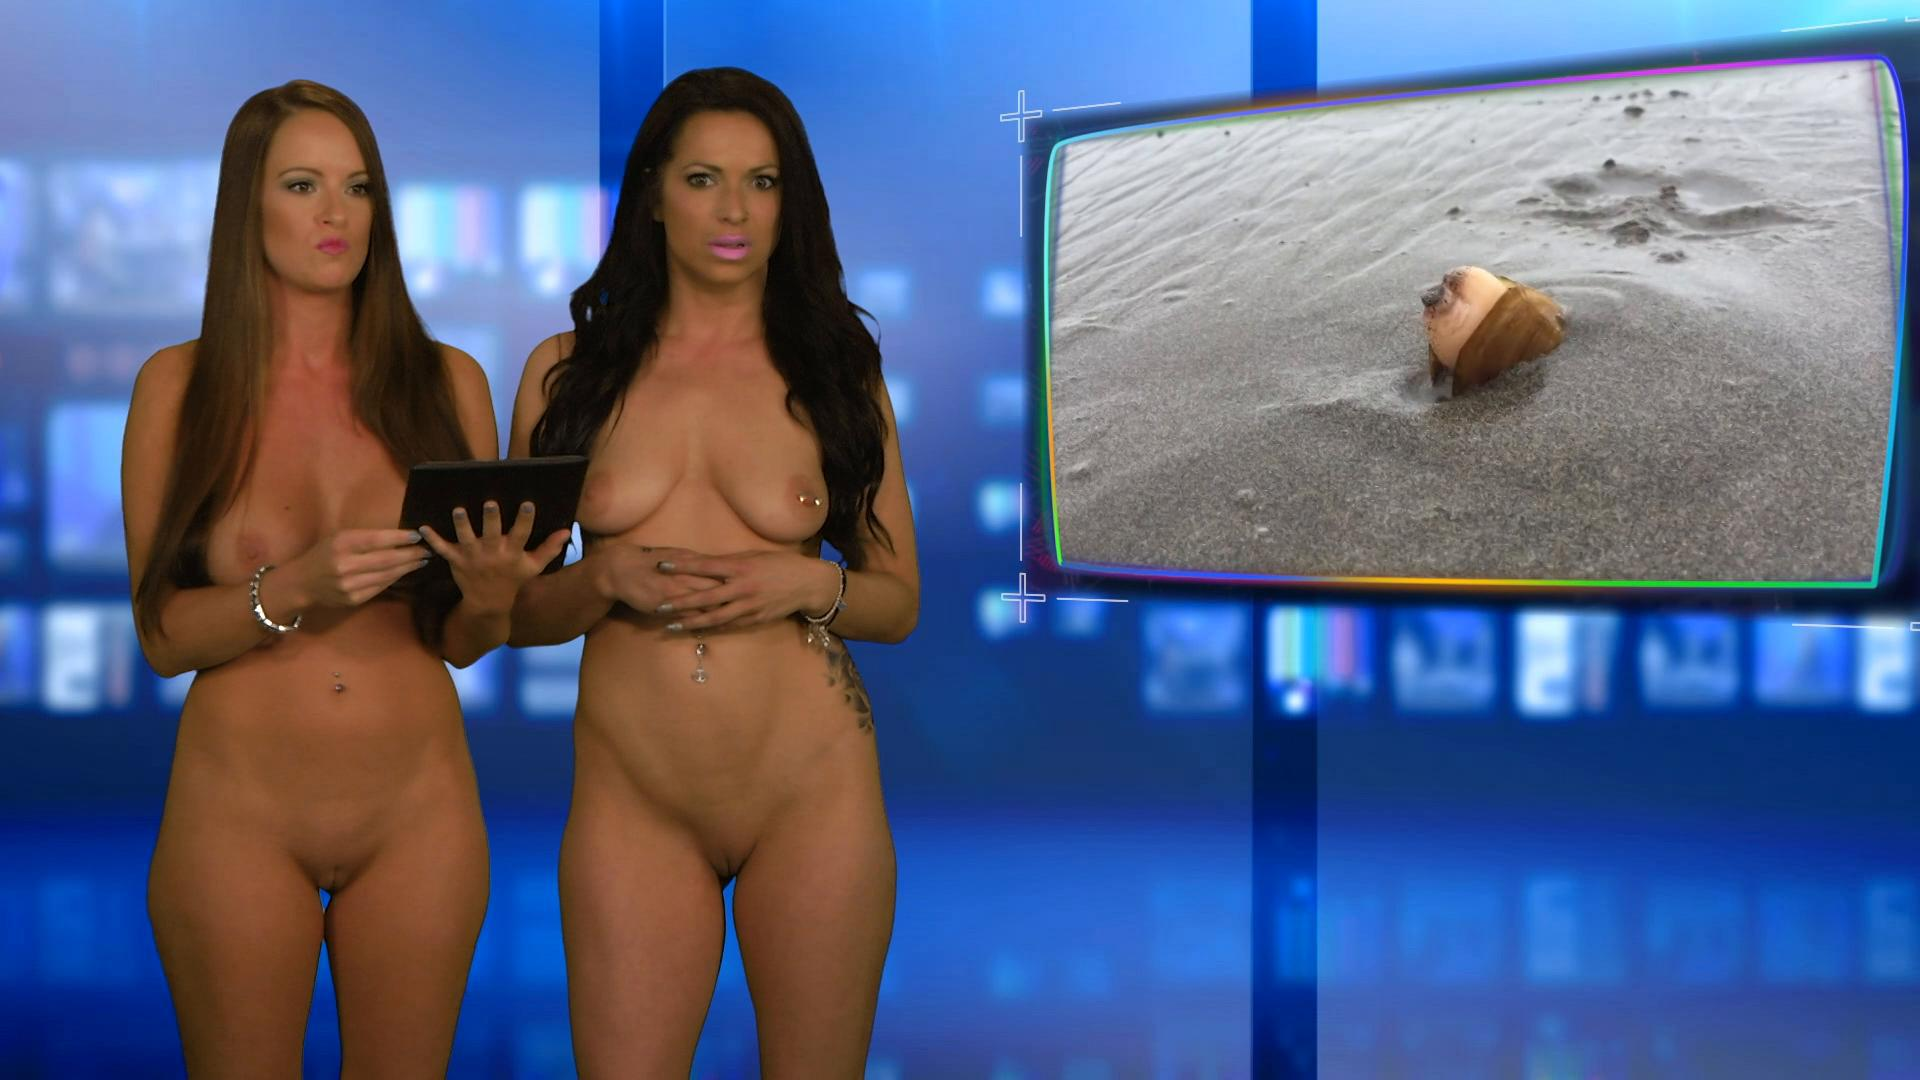 Jen carfagno nude on weather channel